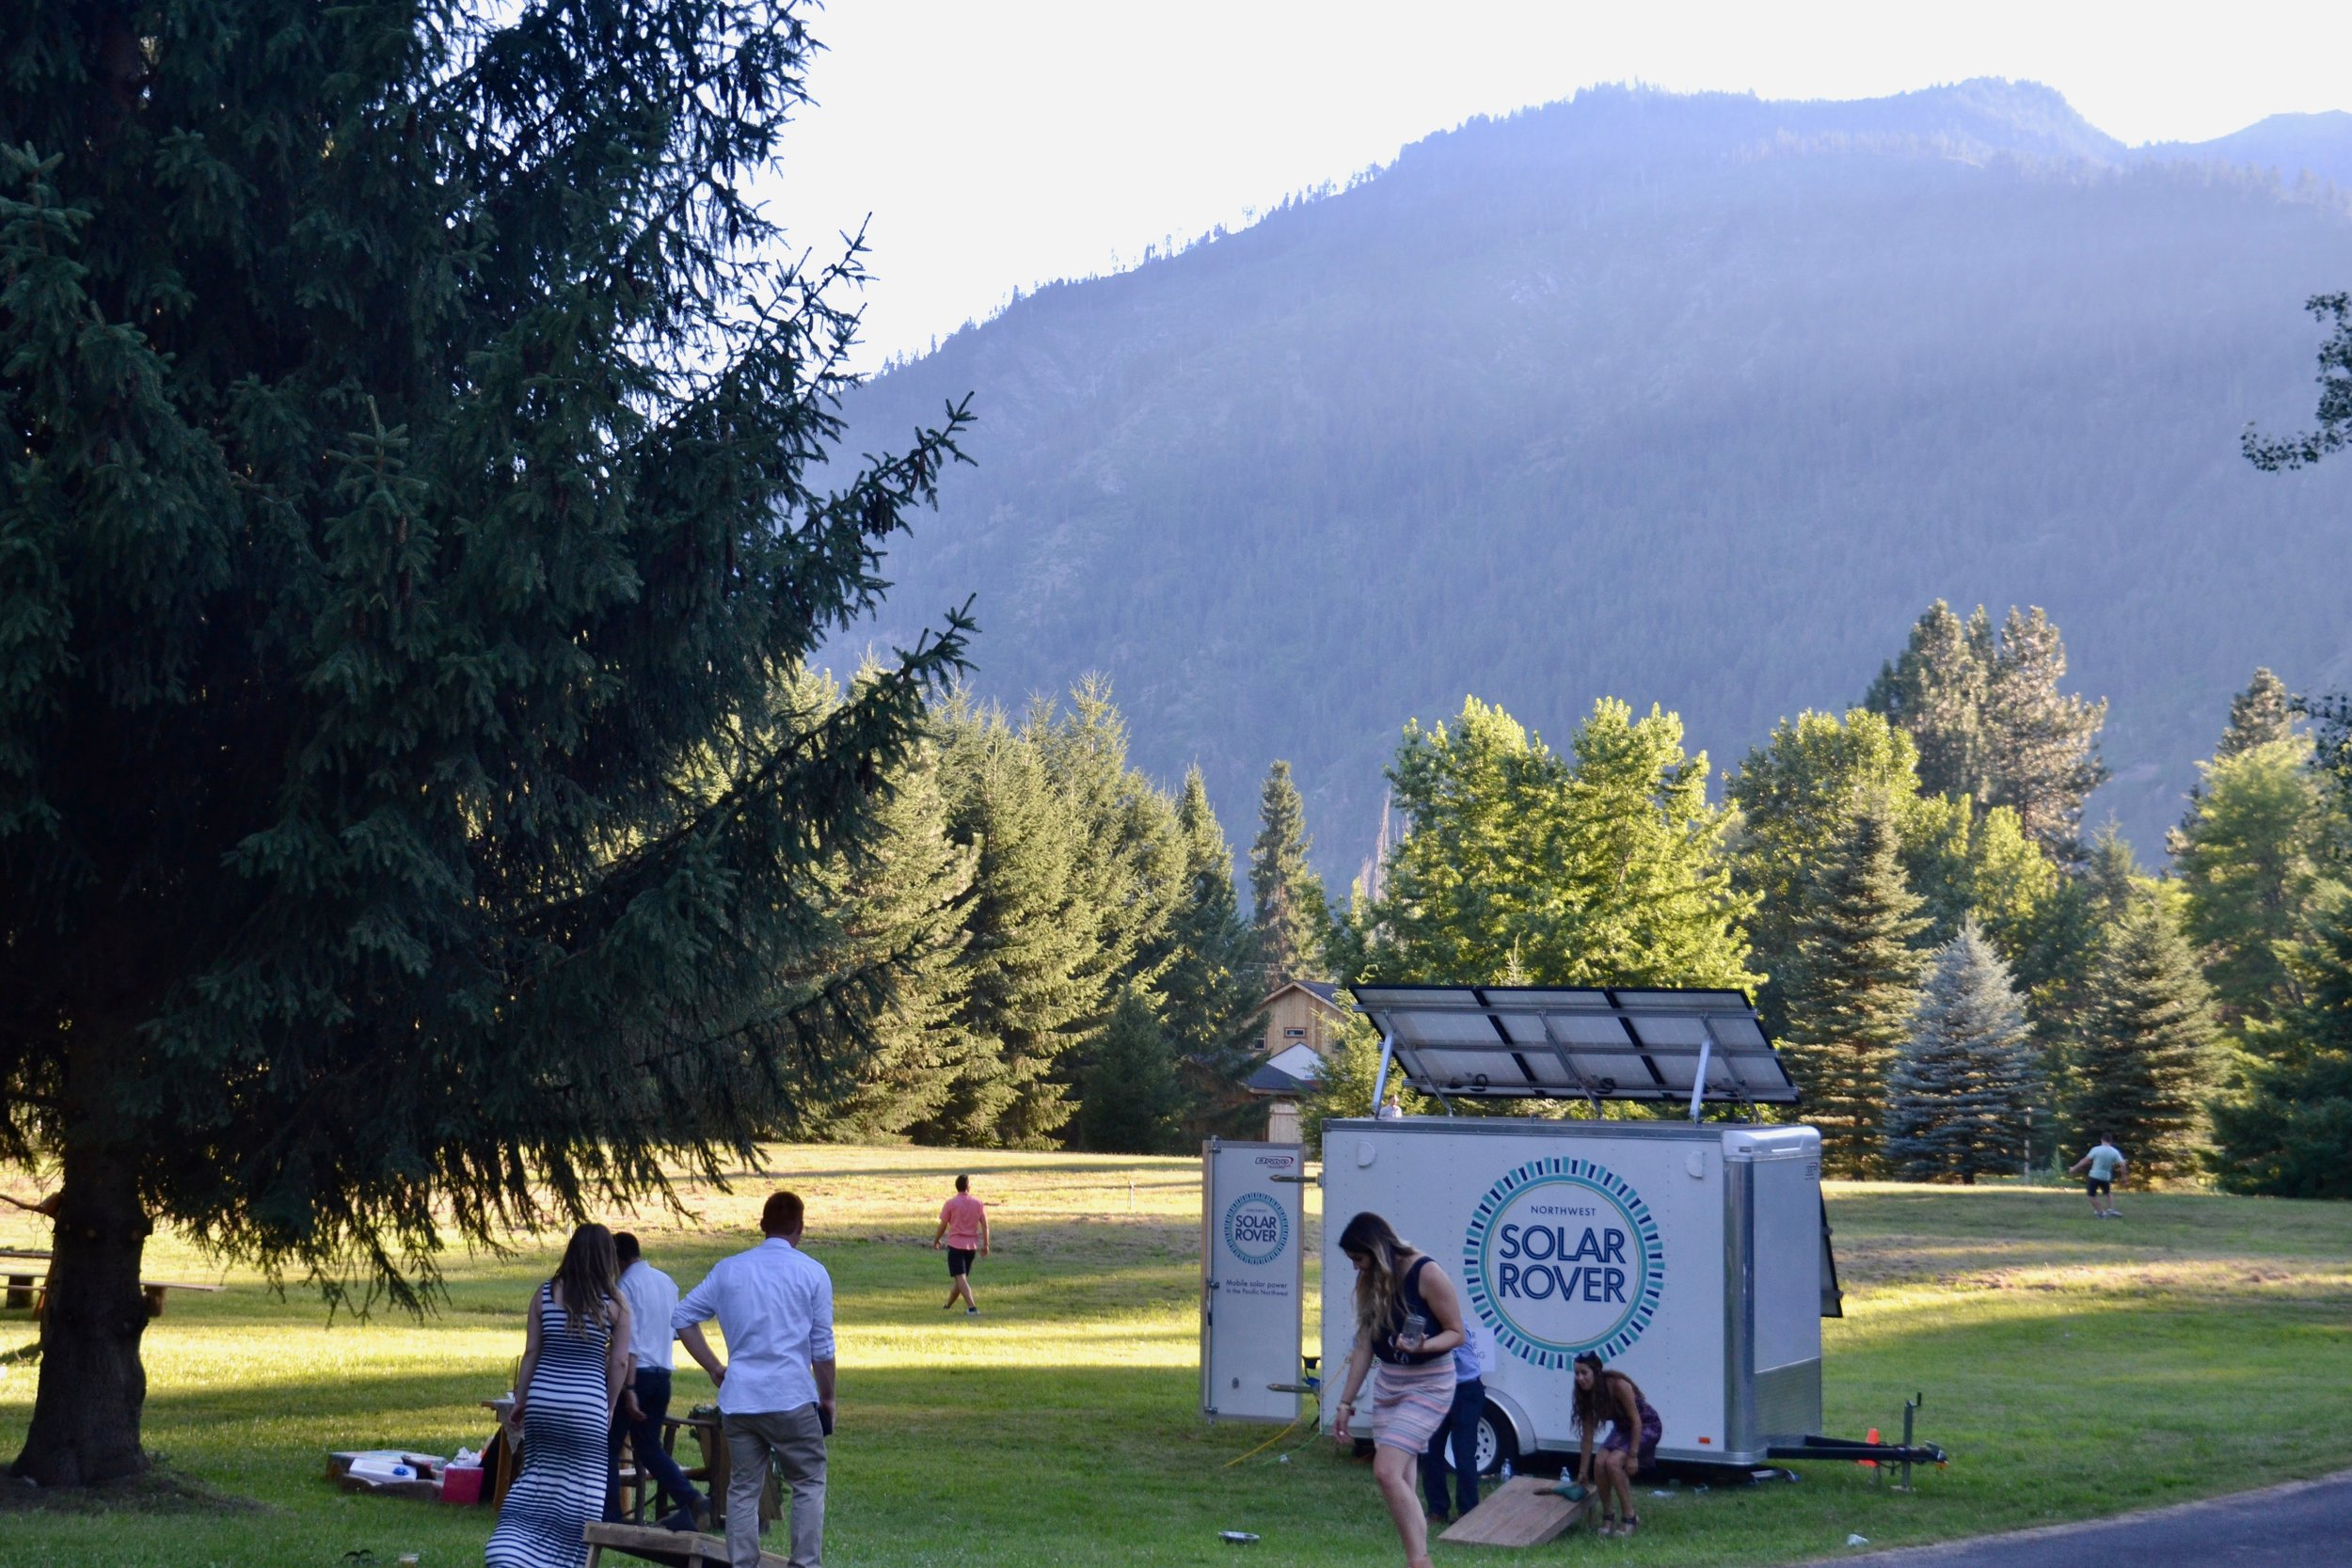 Supplying solar for the string lights and DJ at a wedding in Leavenworth, WA.